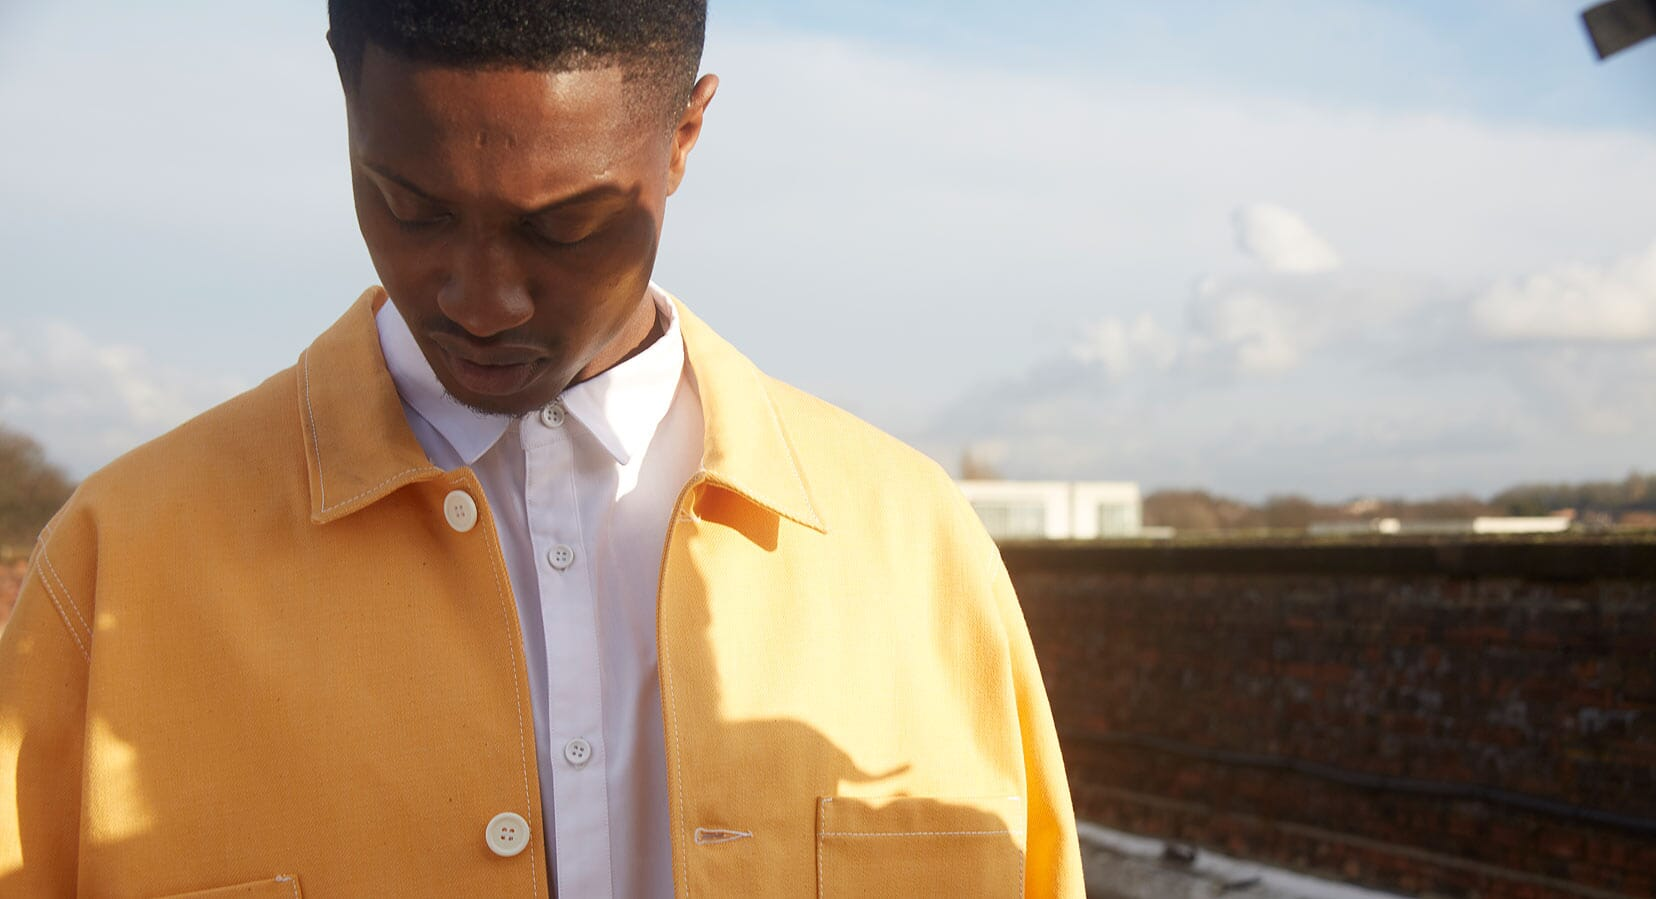 Introducing Paladrin: The Made-In-London Brand You Need To Know